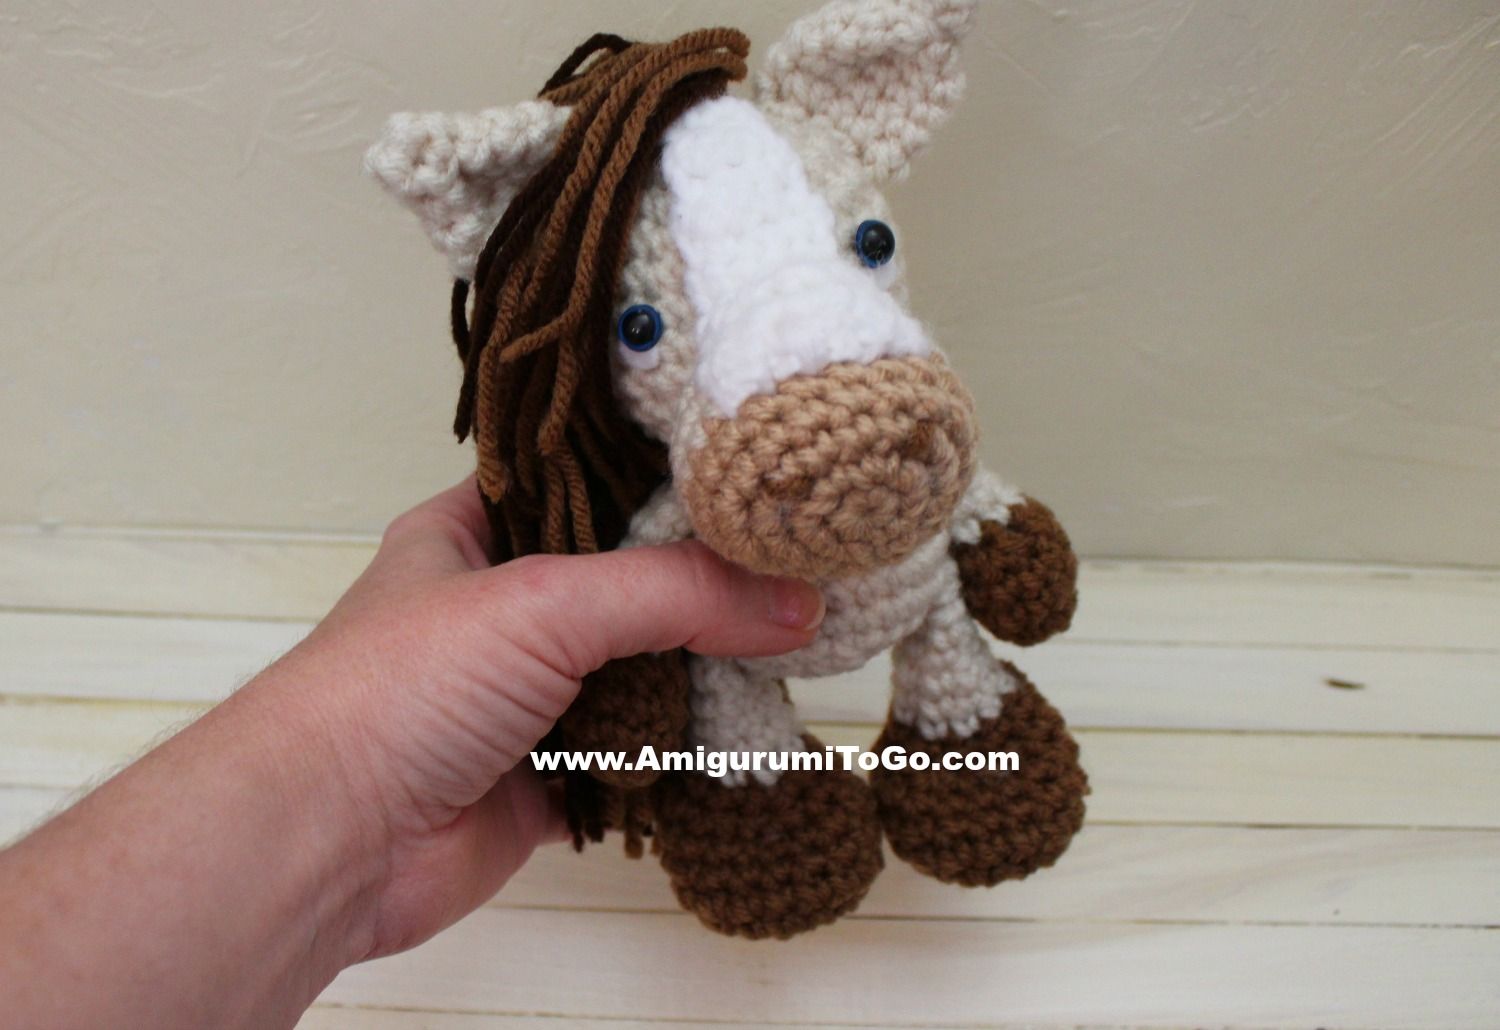 Amigurumi Horse Tutorial : Small horses toy crochet pattern pdf small cute amigurumi